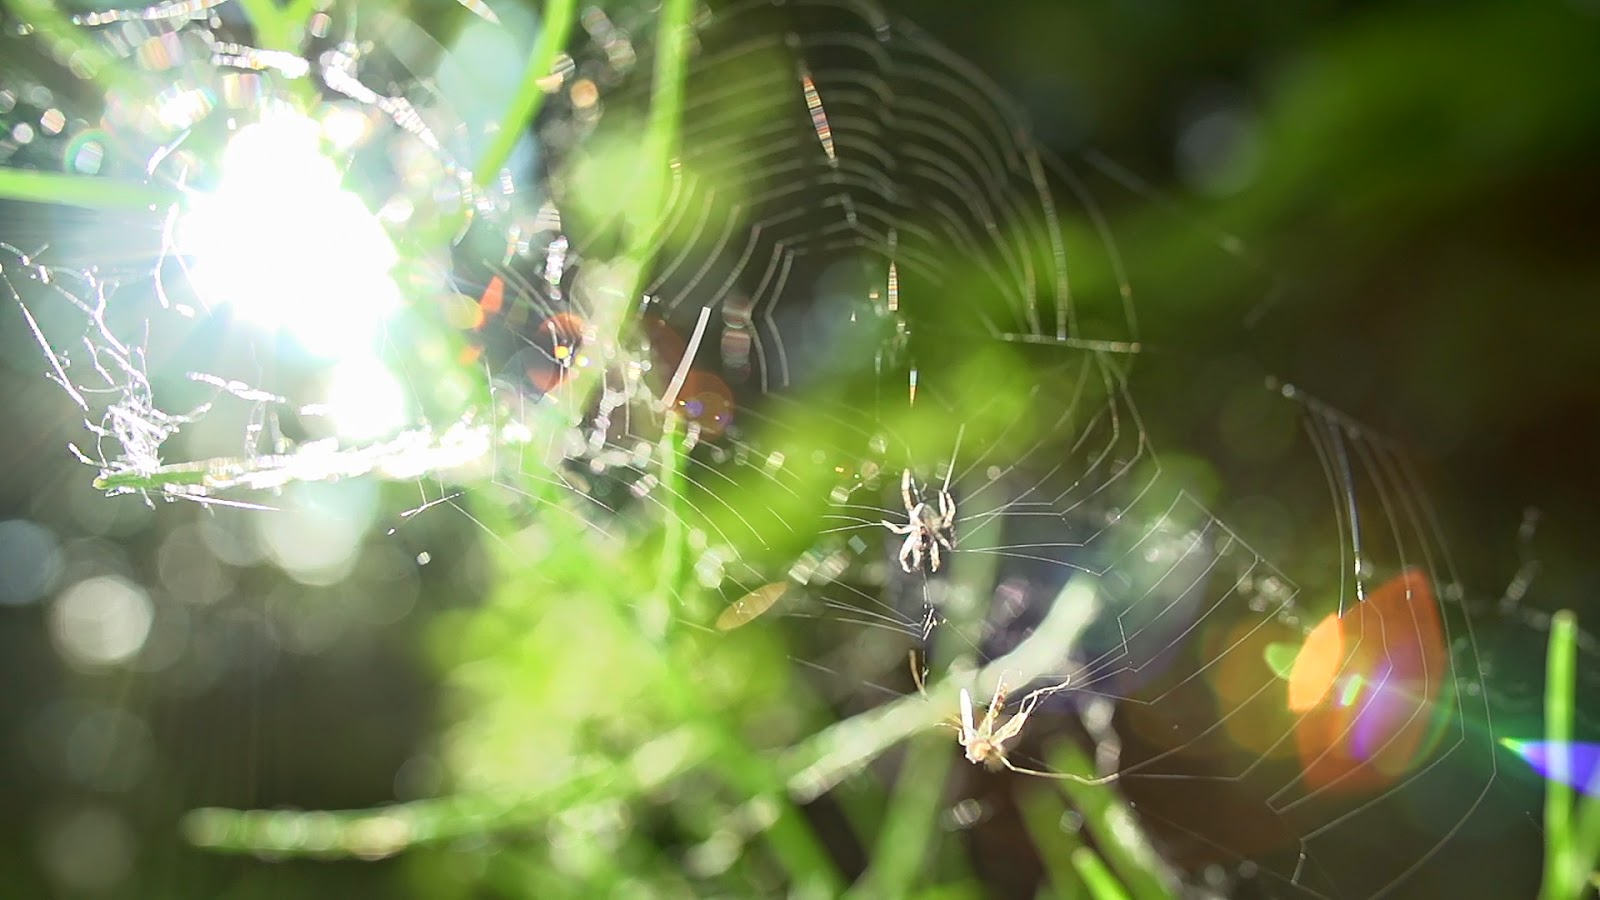 Free Royalty Free Footage of a mosquito caught in a spiderweb being eaten